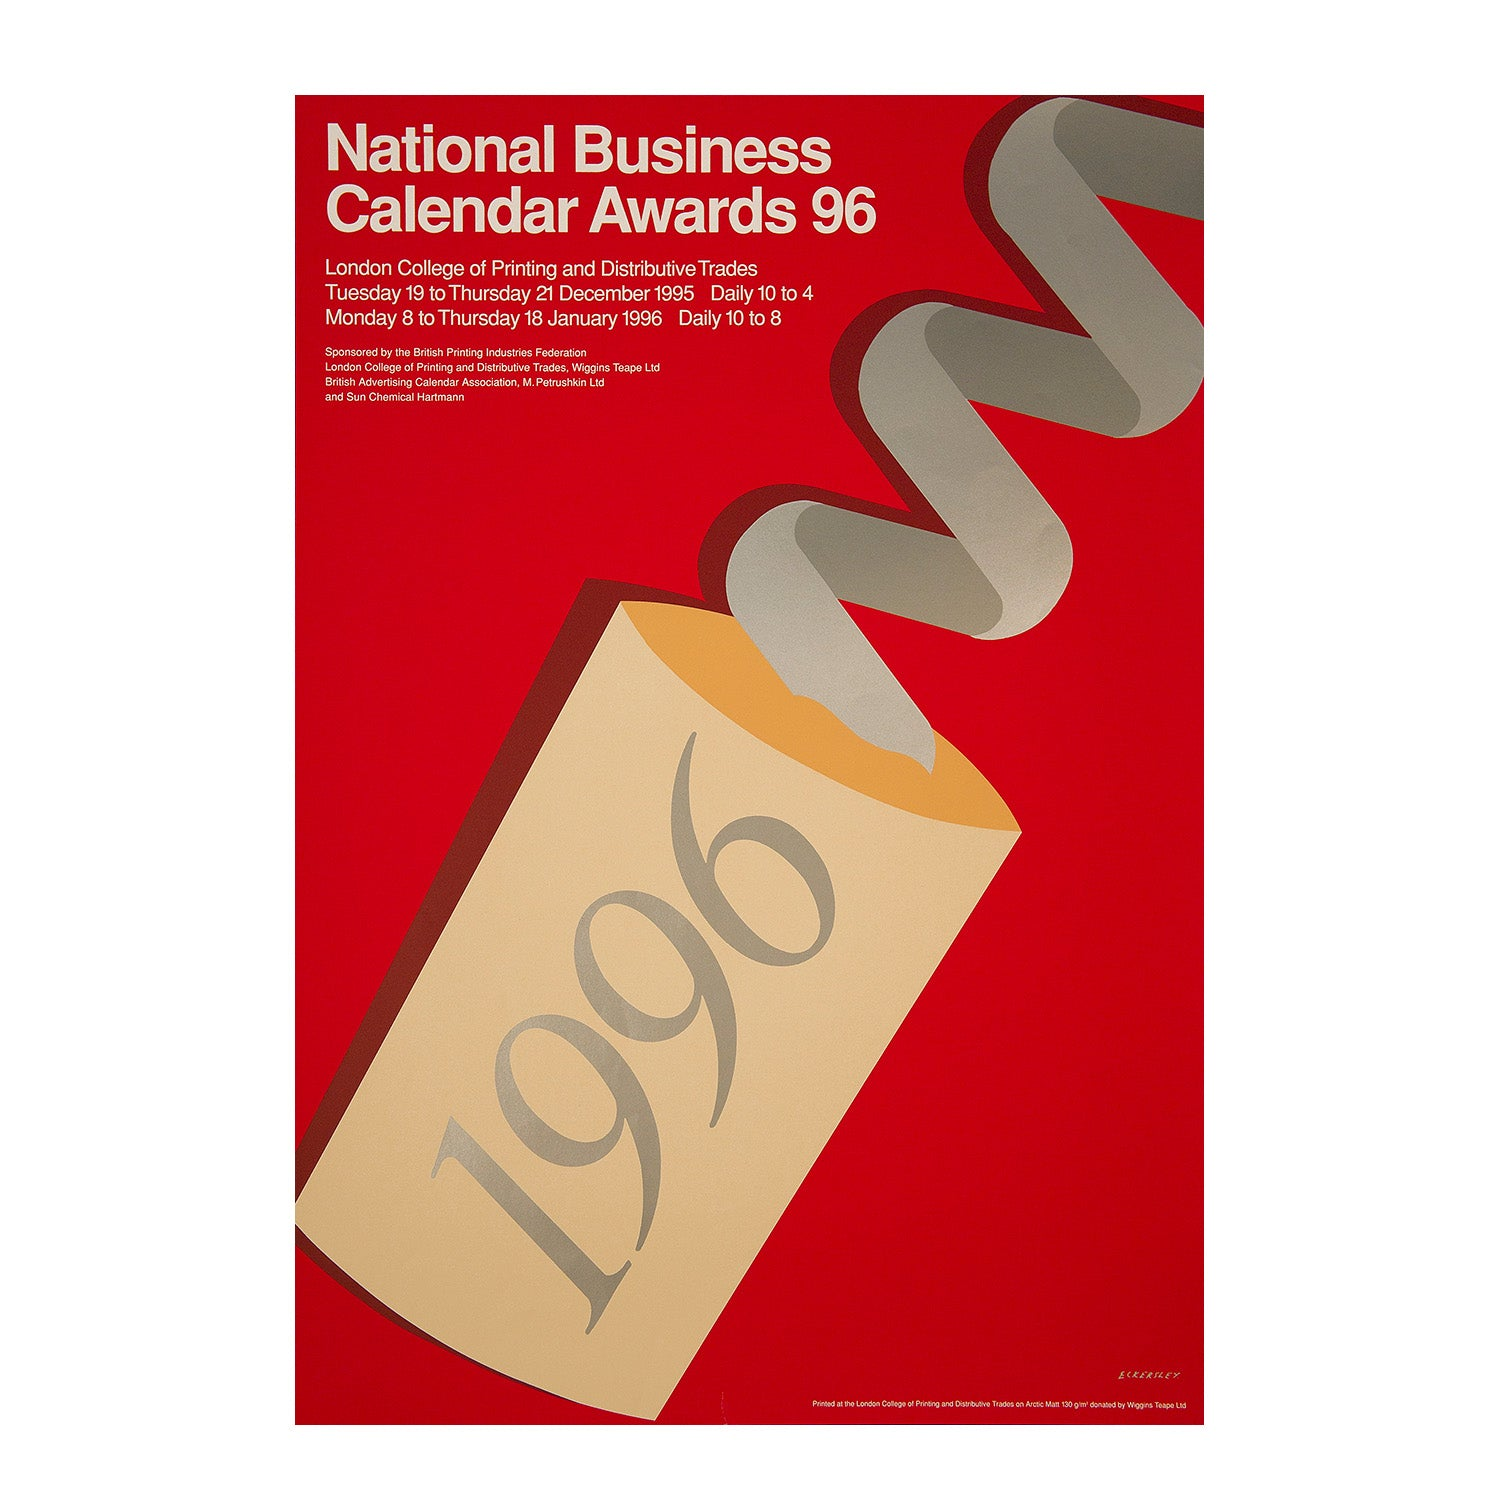 National Business Calendar Awards 96